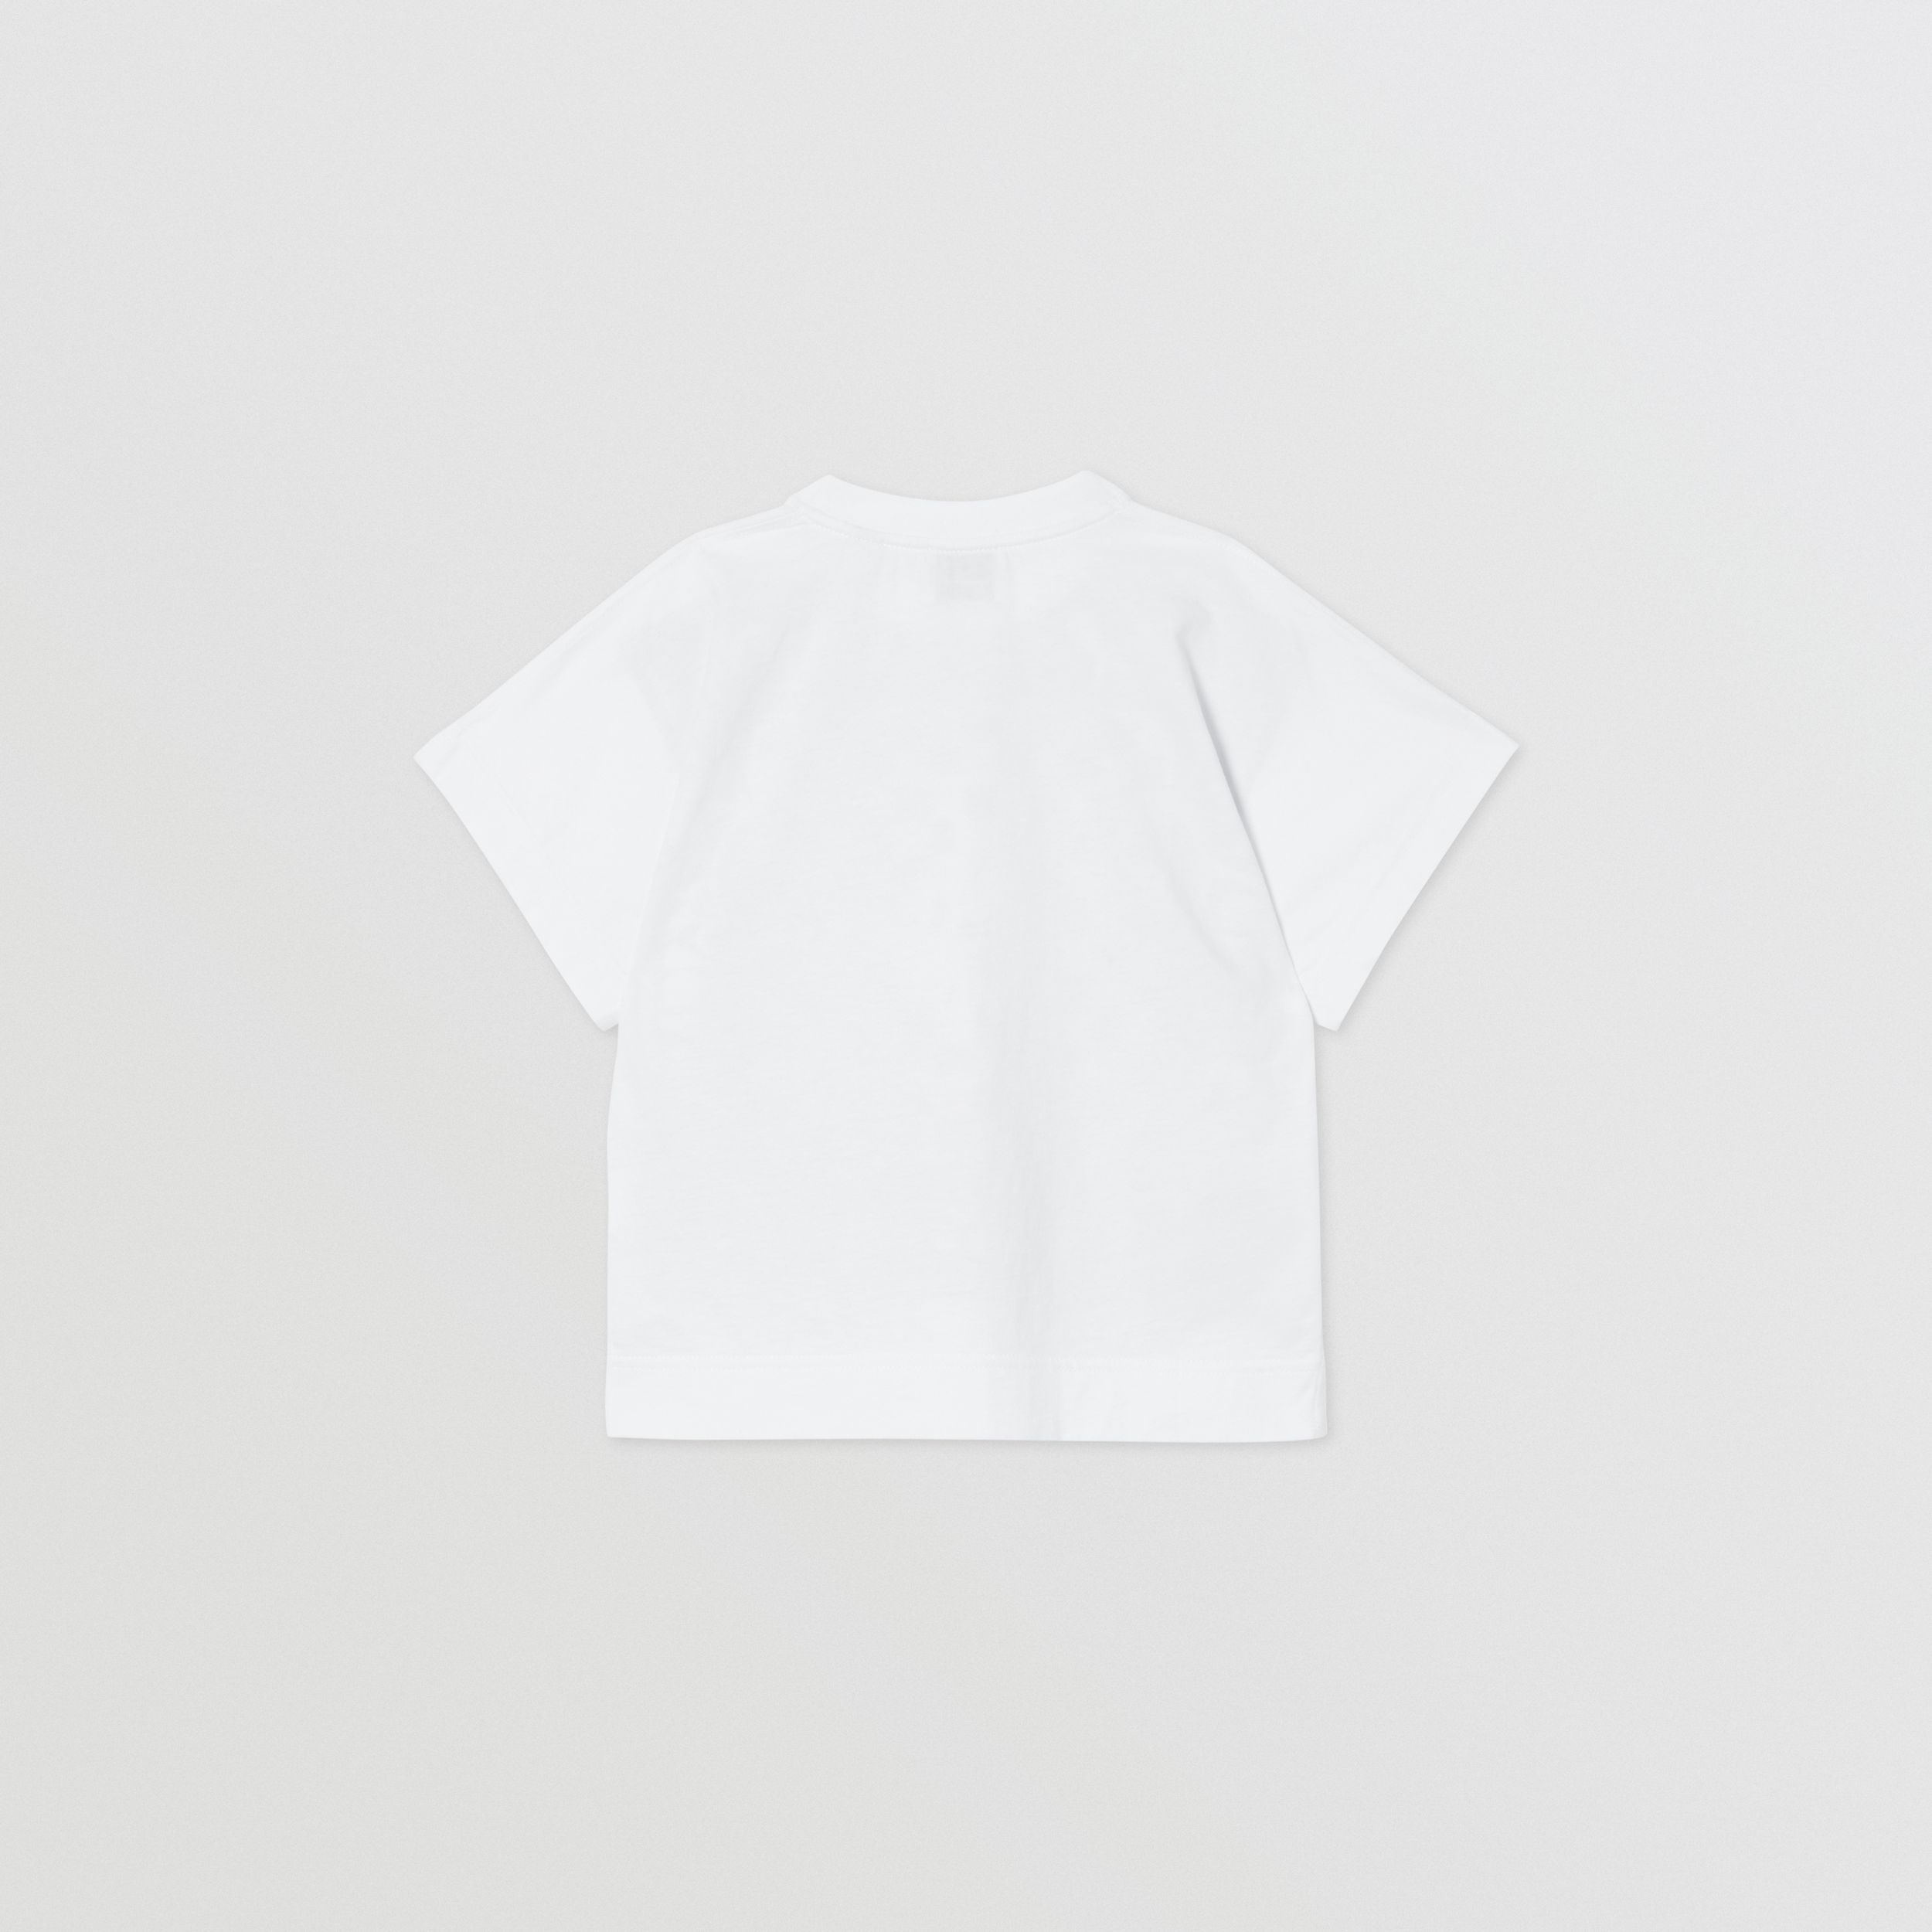 Scarf Print Cotton T-shirt in White | Burberry Hong Kong S.A.R. - 4